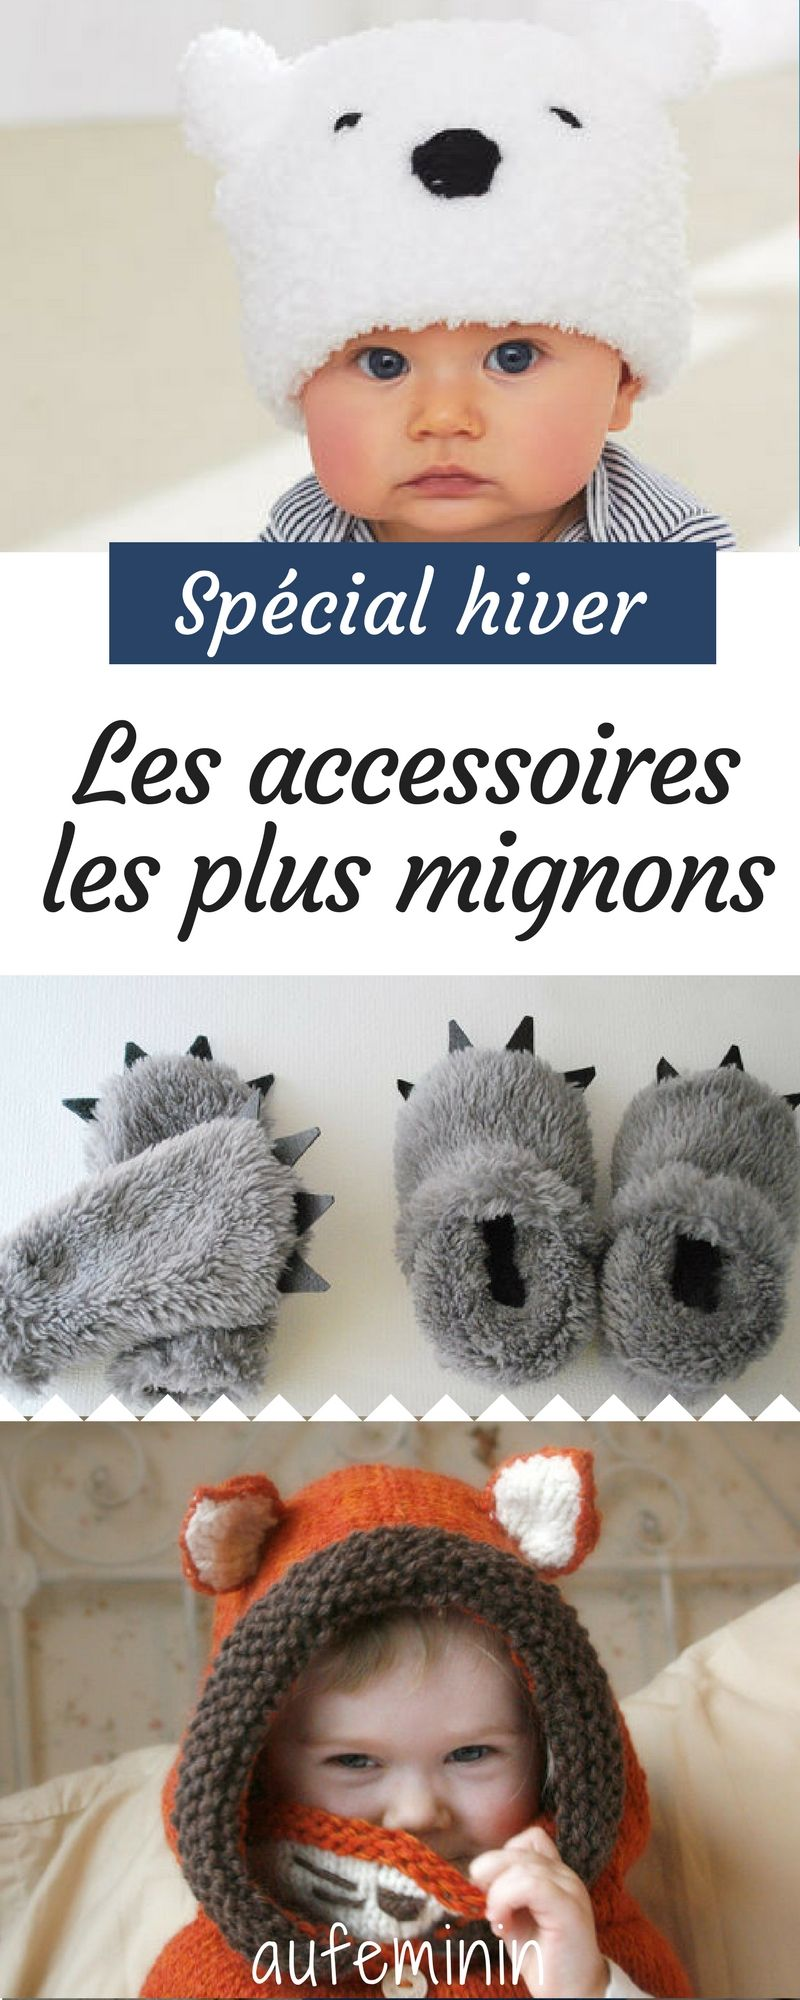 Les indispensables de l hiver les plus mignons pour mon bout de chou  gants   bonnet  cagoule  snood  béguin   diy  shopping  mode  bébé  enfant   combinaison ... 9211aa51f20